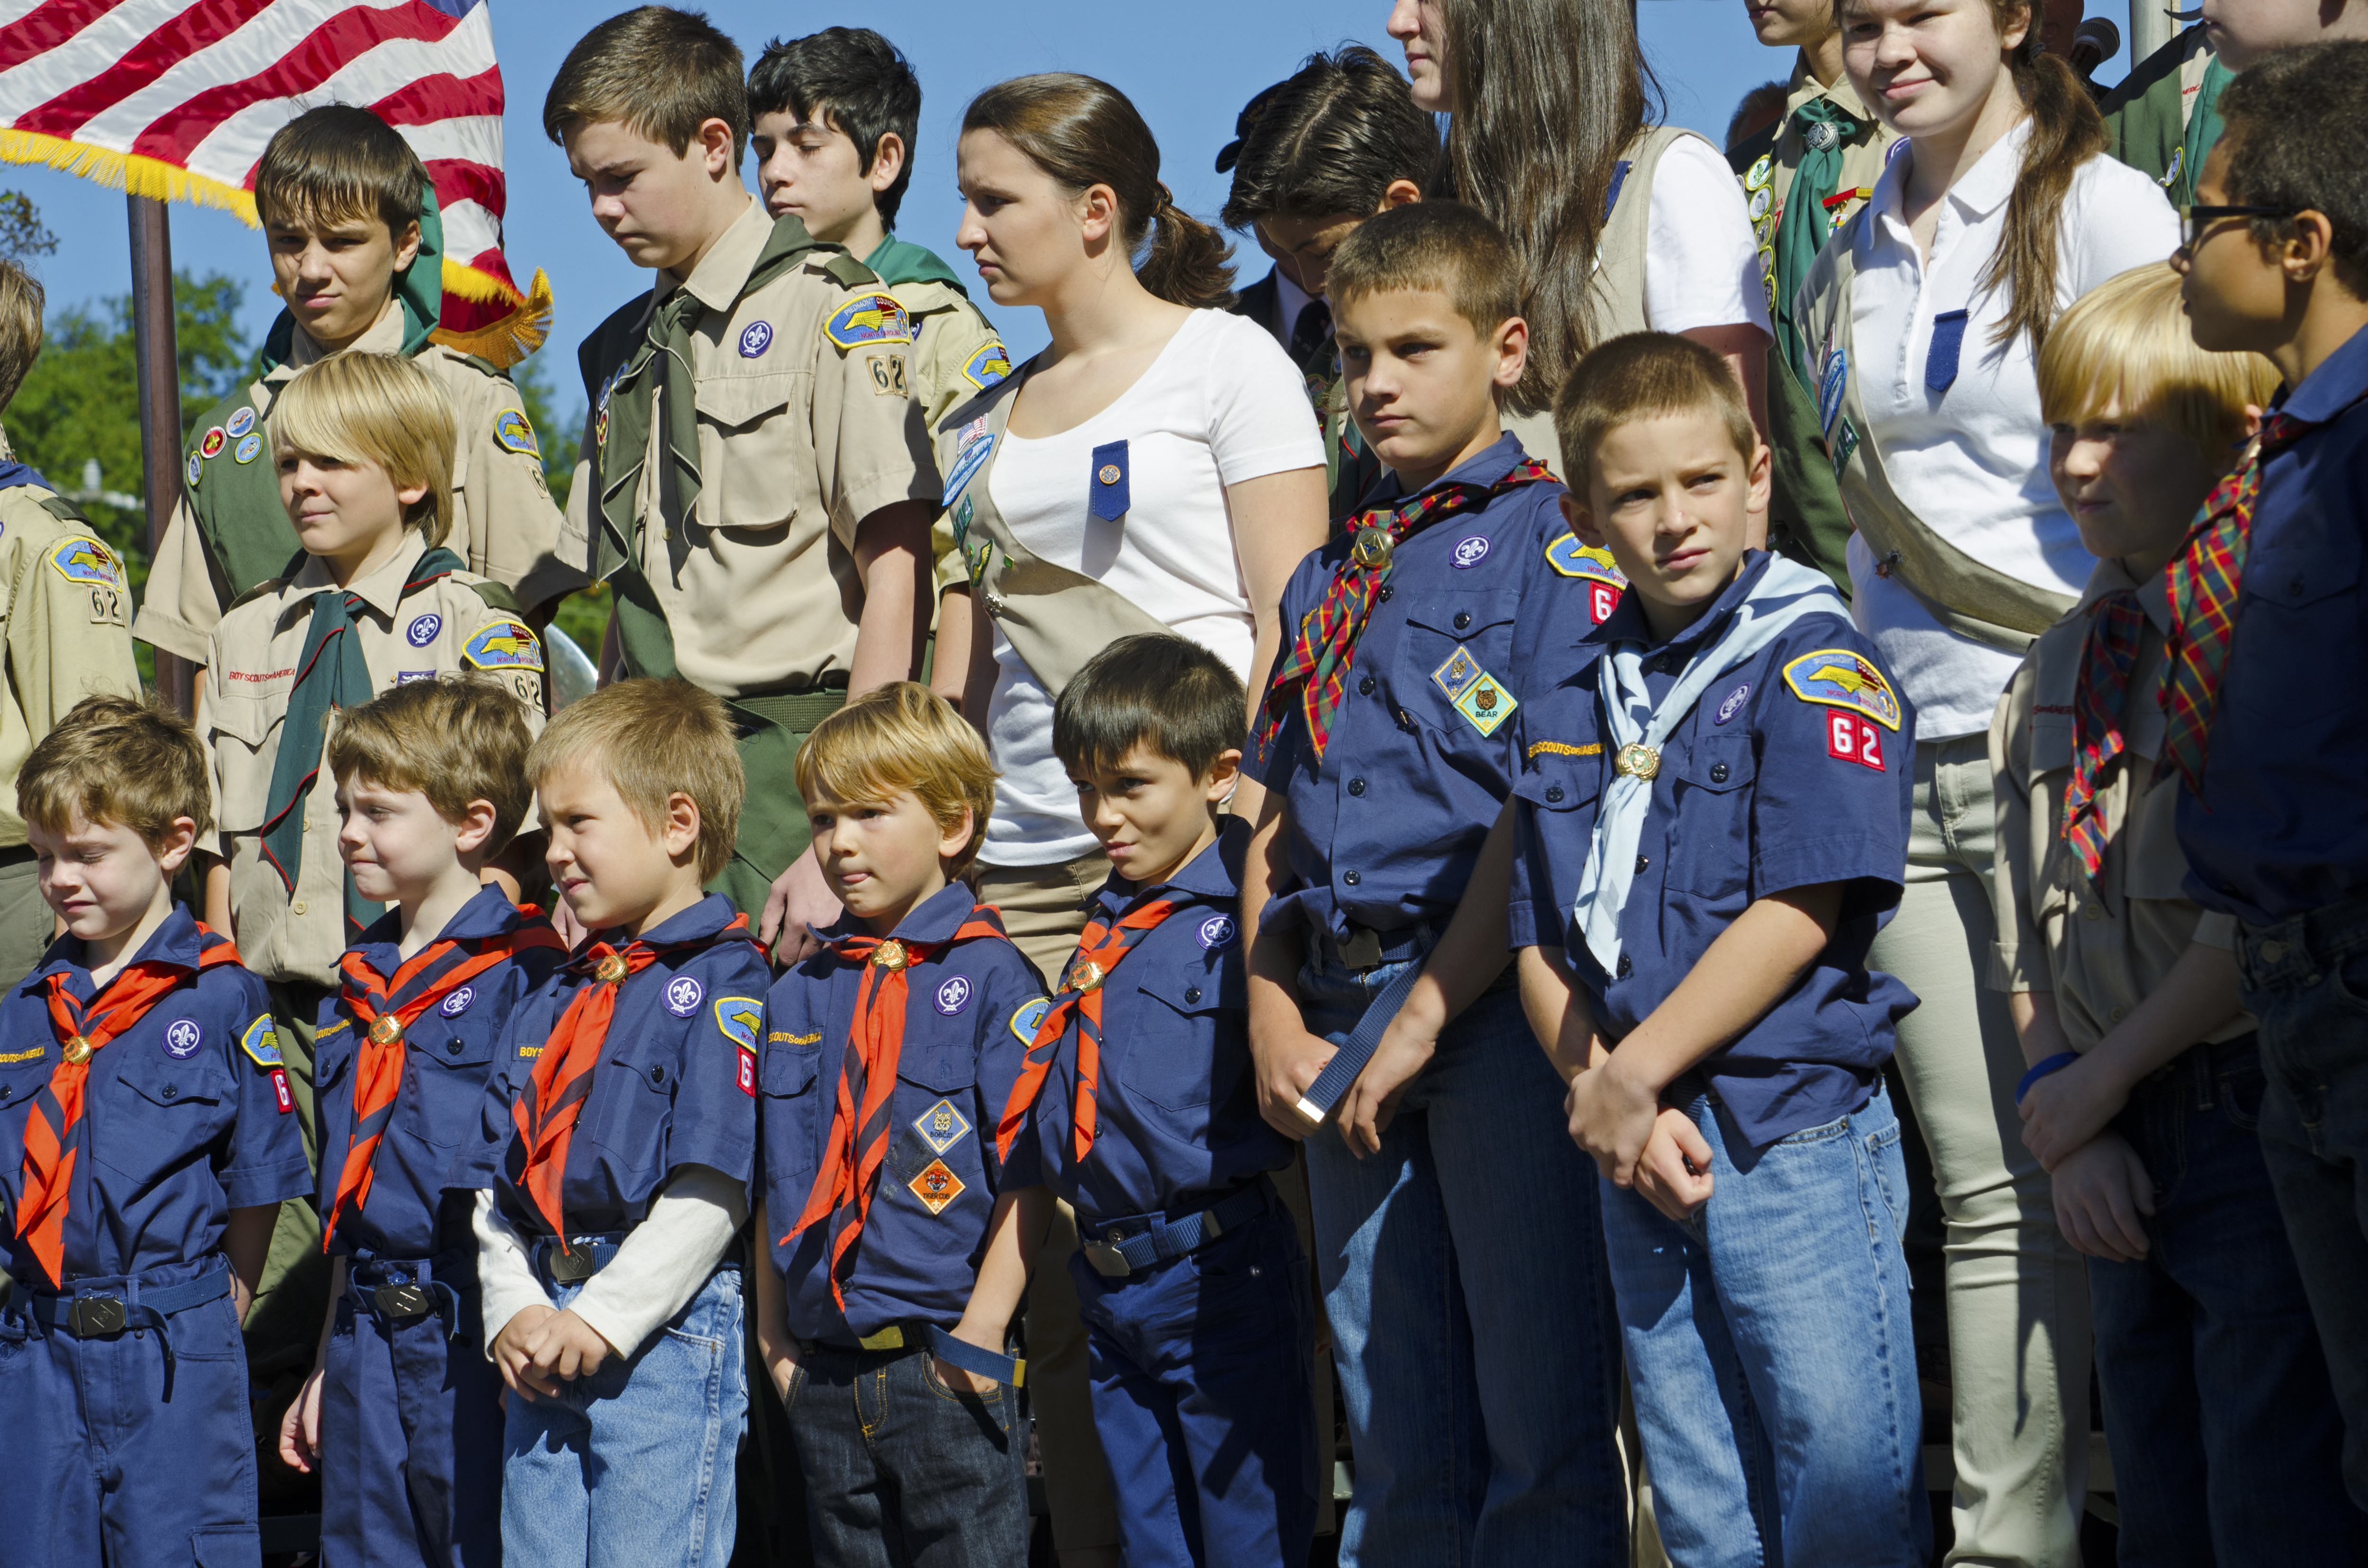 Boy Scouts and Girl Scouts